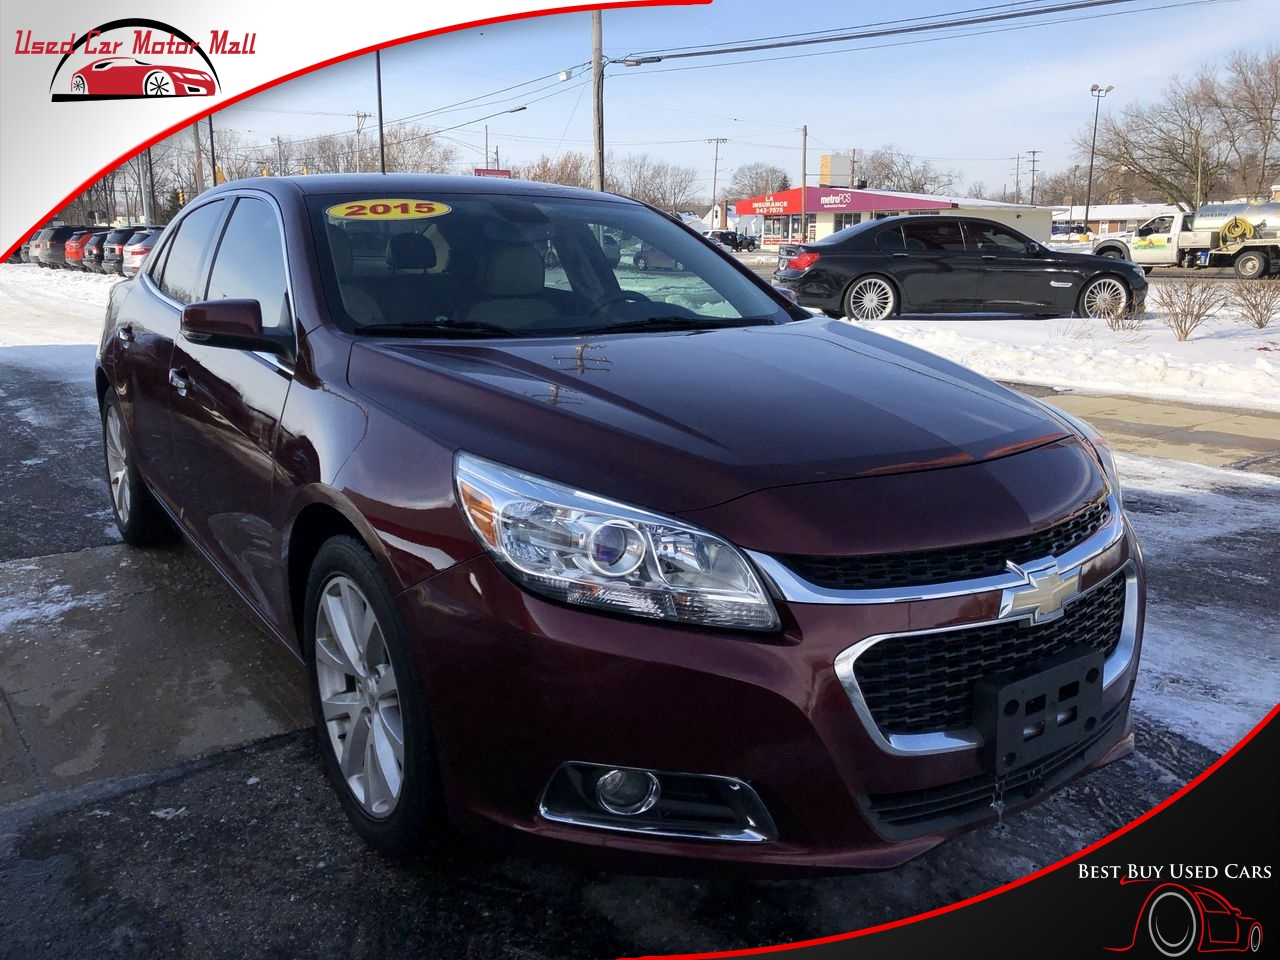 2018 Chevrolet Malibu LT, 152750, Photo 1